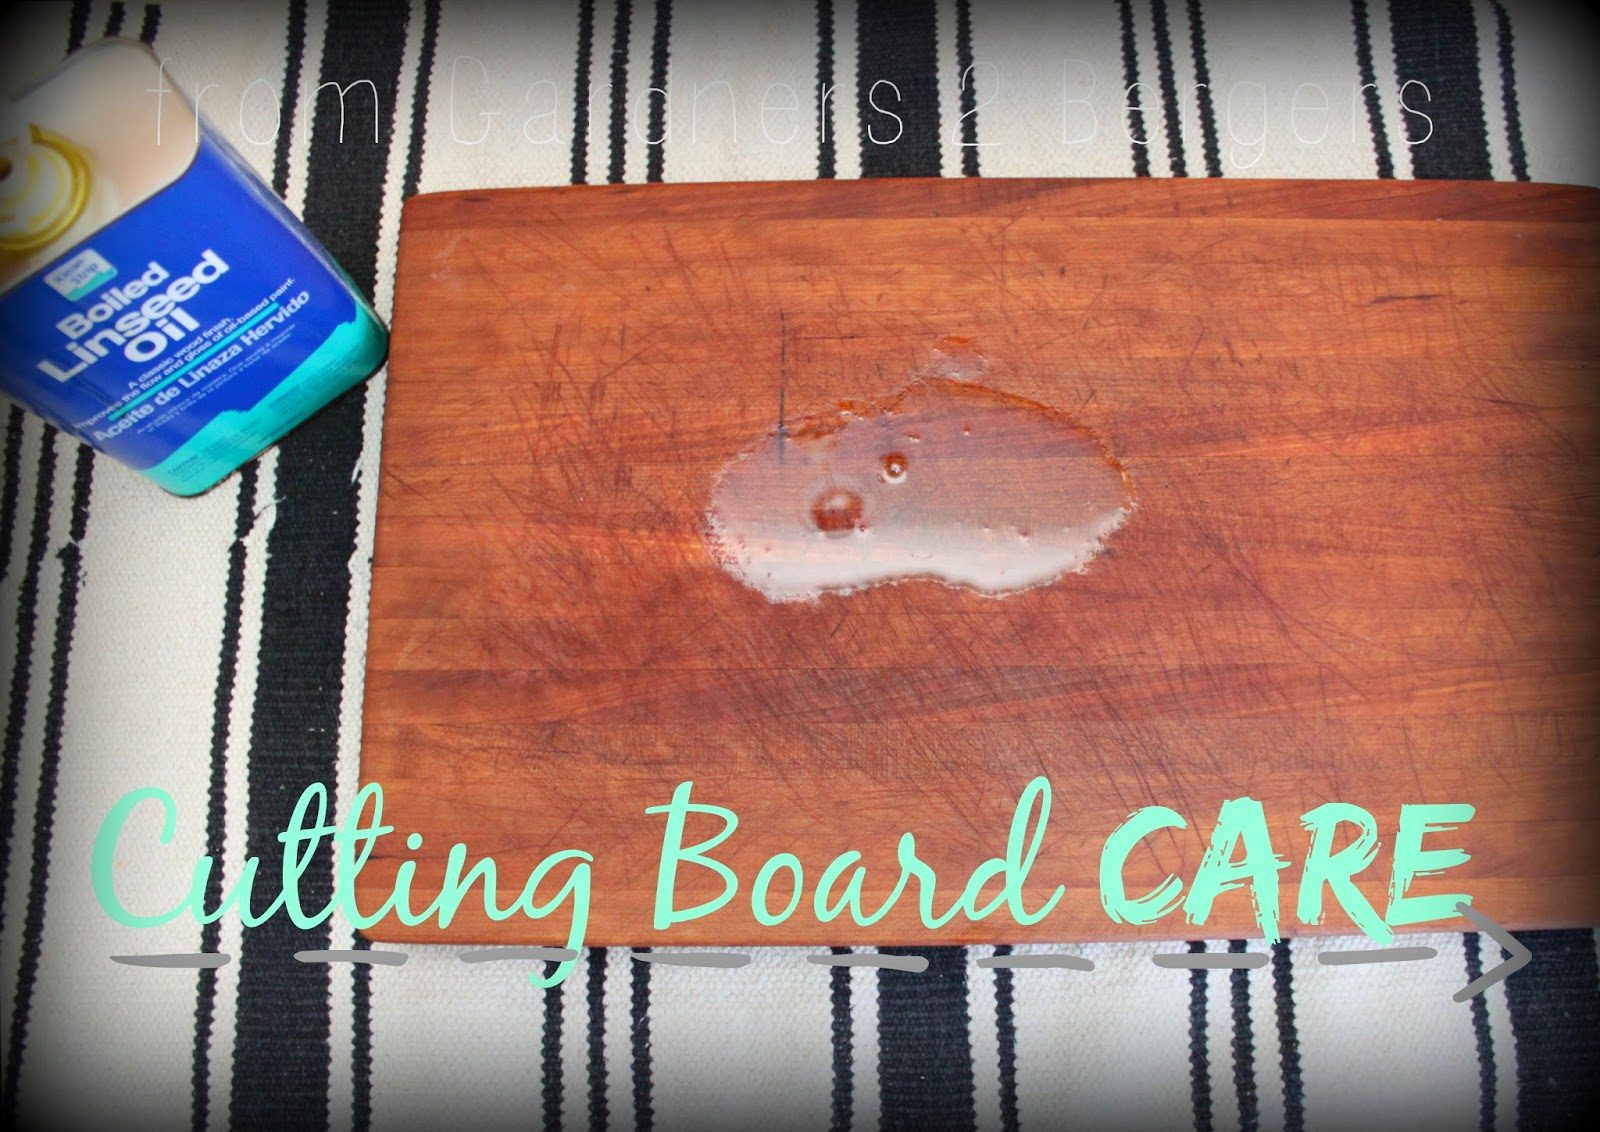 From Gardners 2 Bergers Cutting Board Care